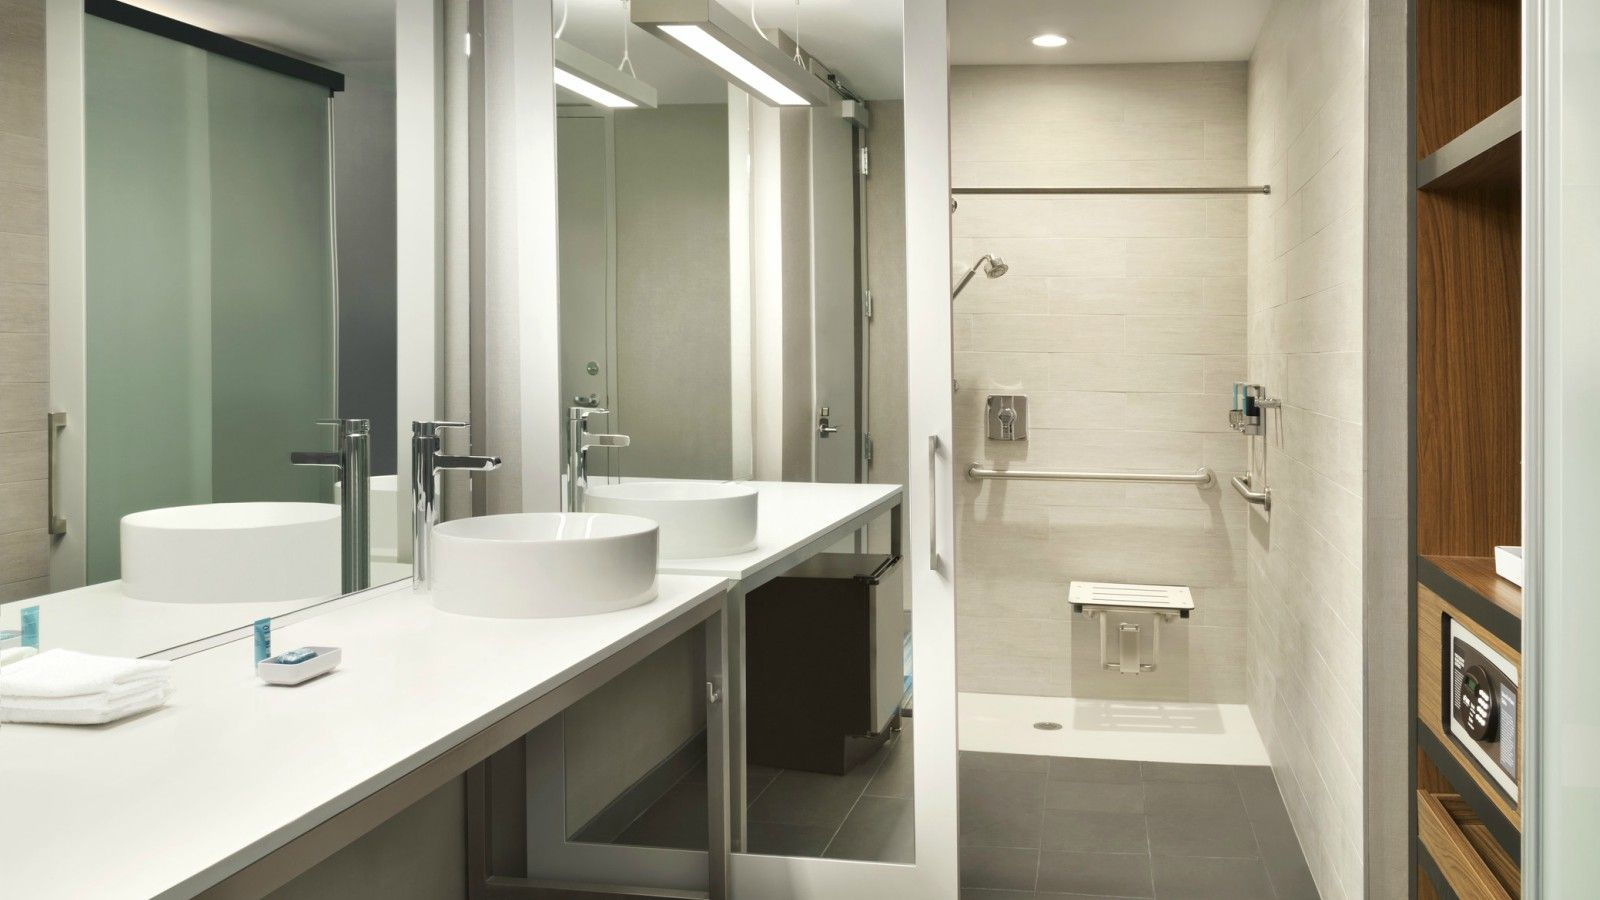 Hillsboro Accommodations - Accessible Guest Bathroom